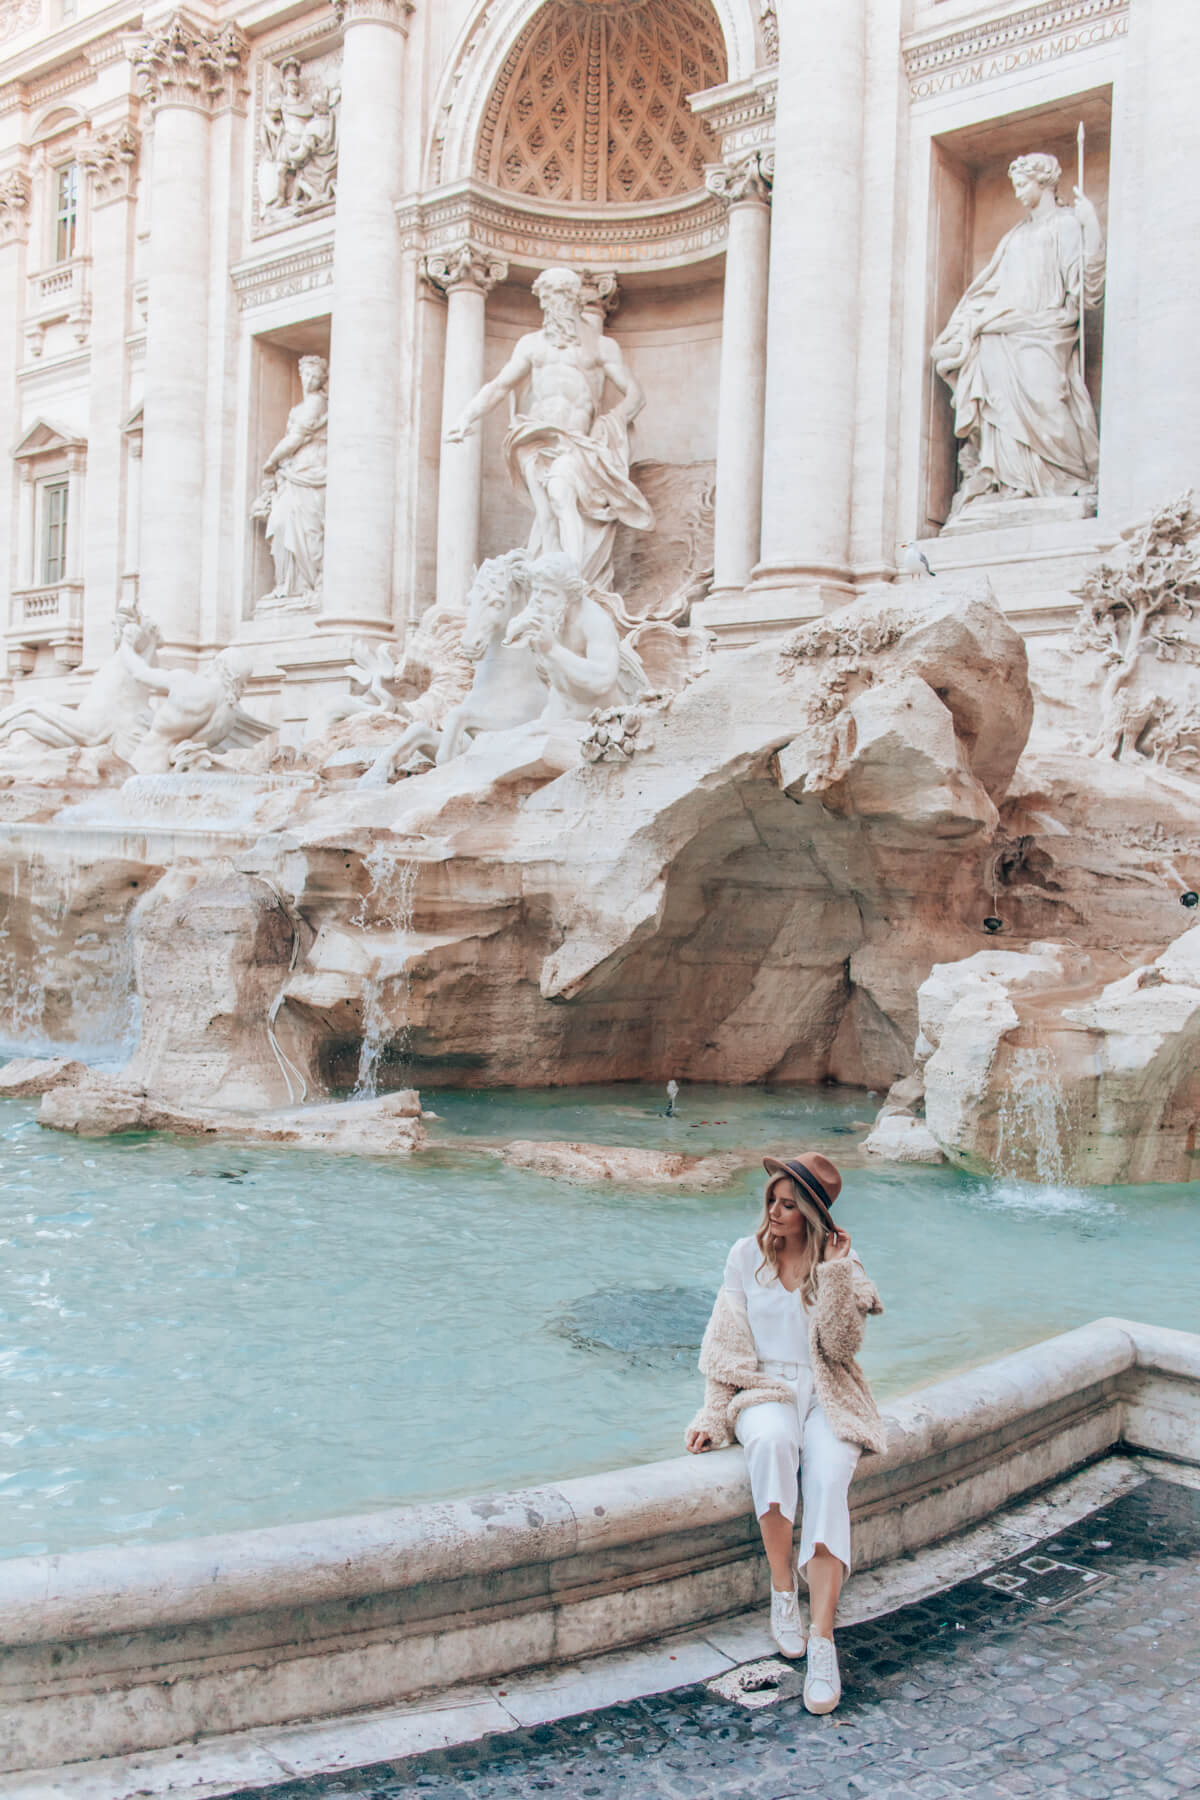 Trevi fountain Rome - What to see